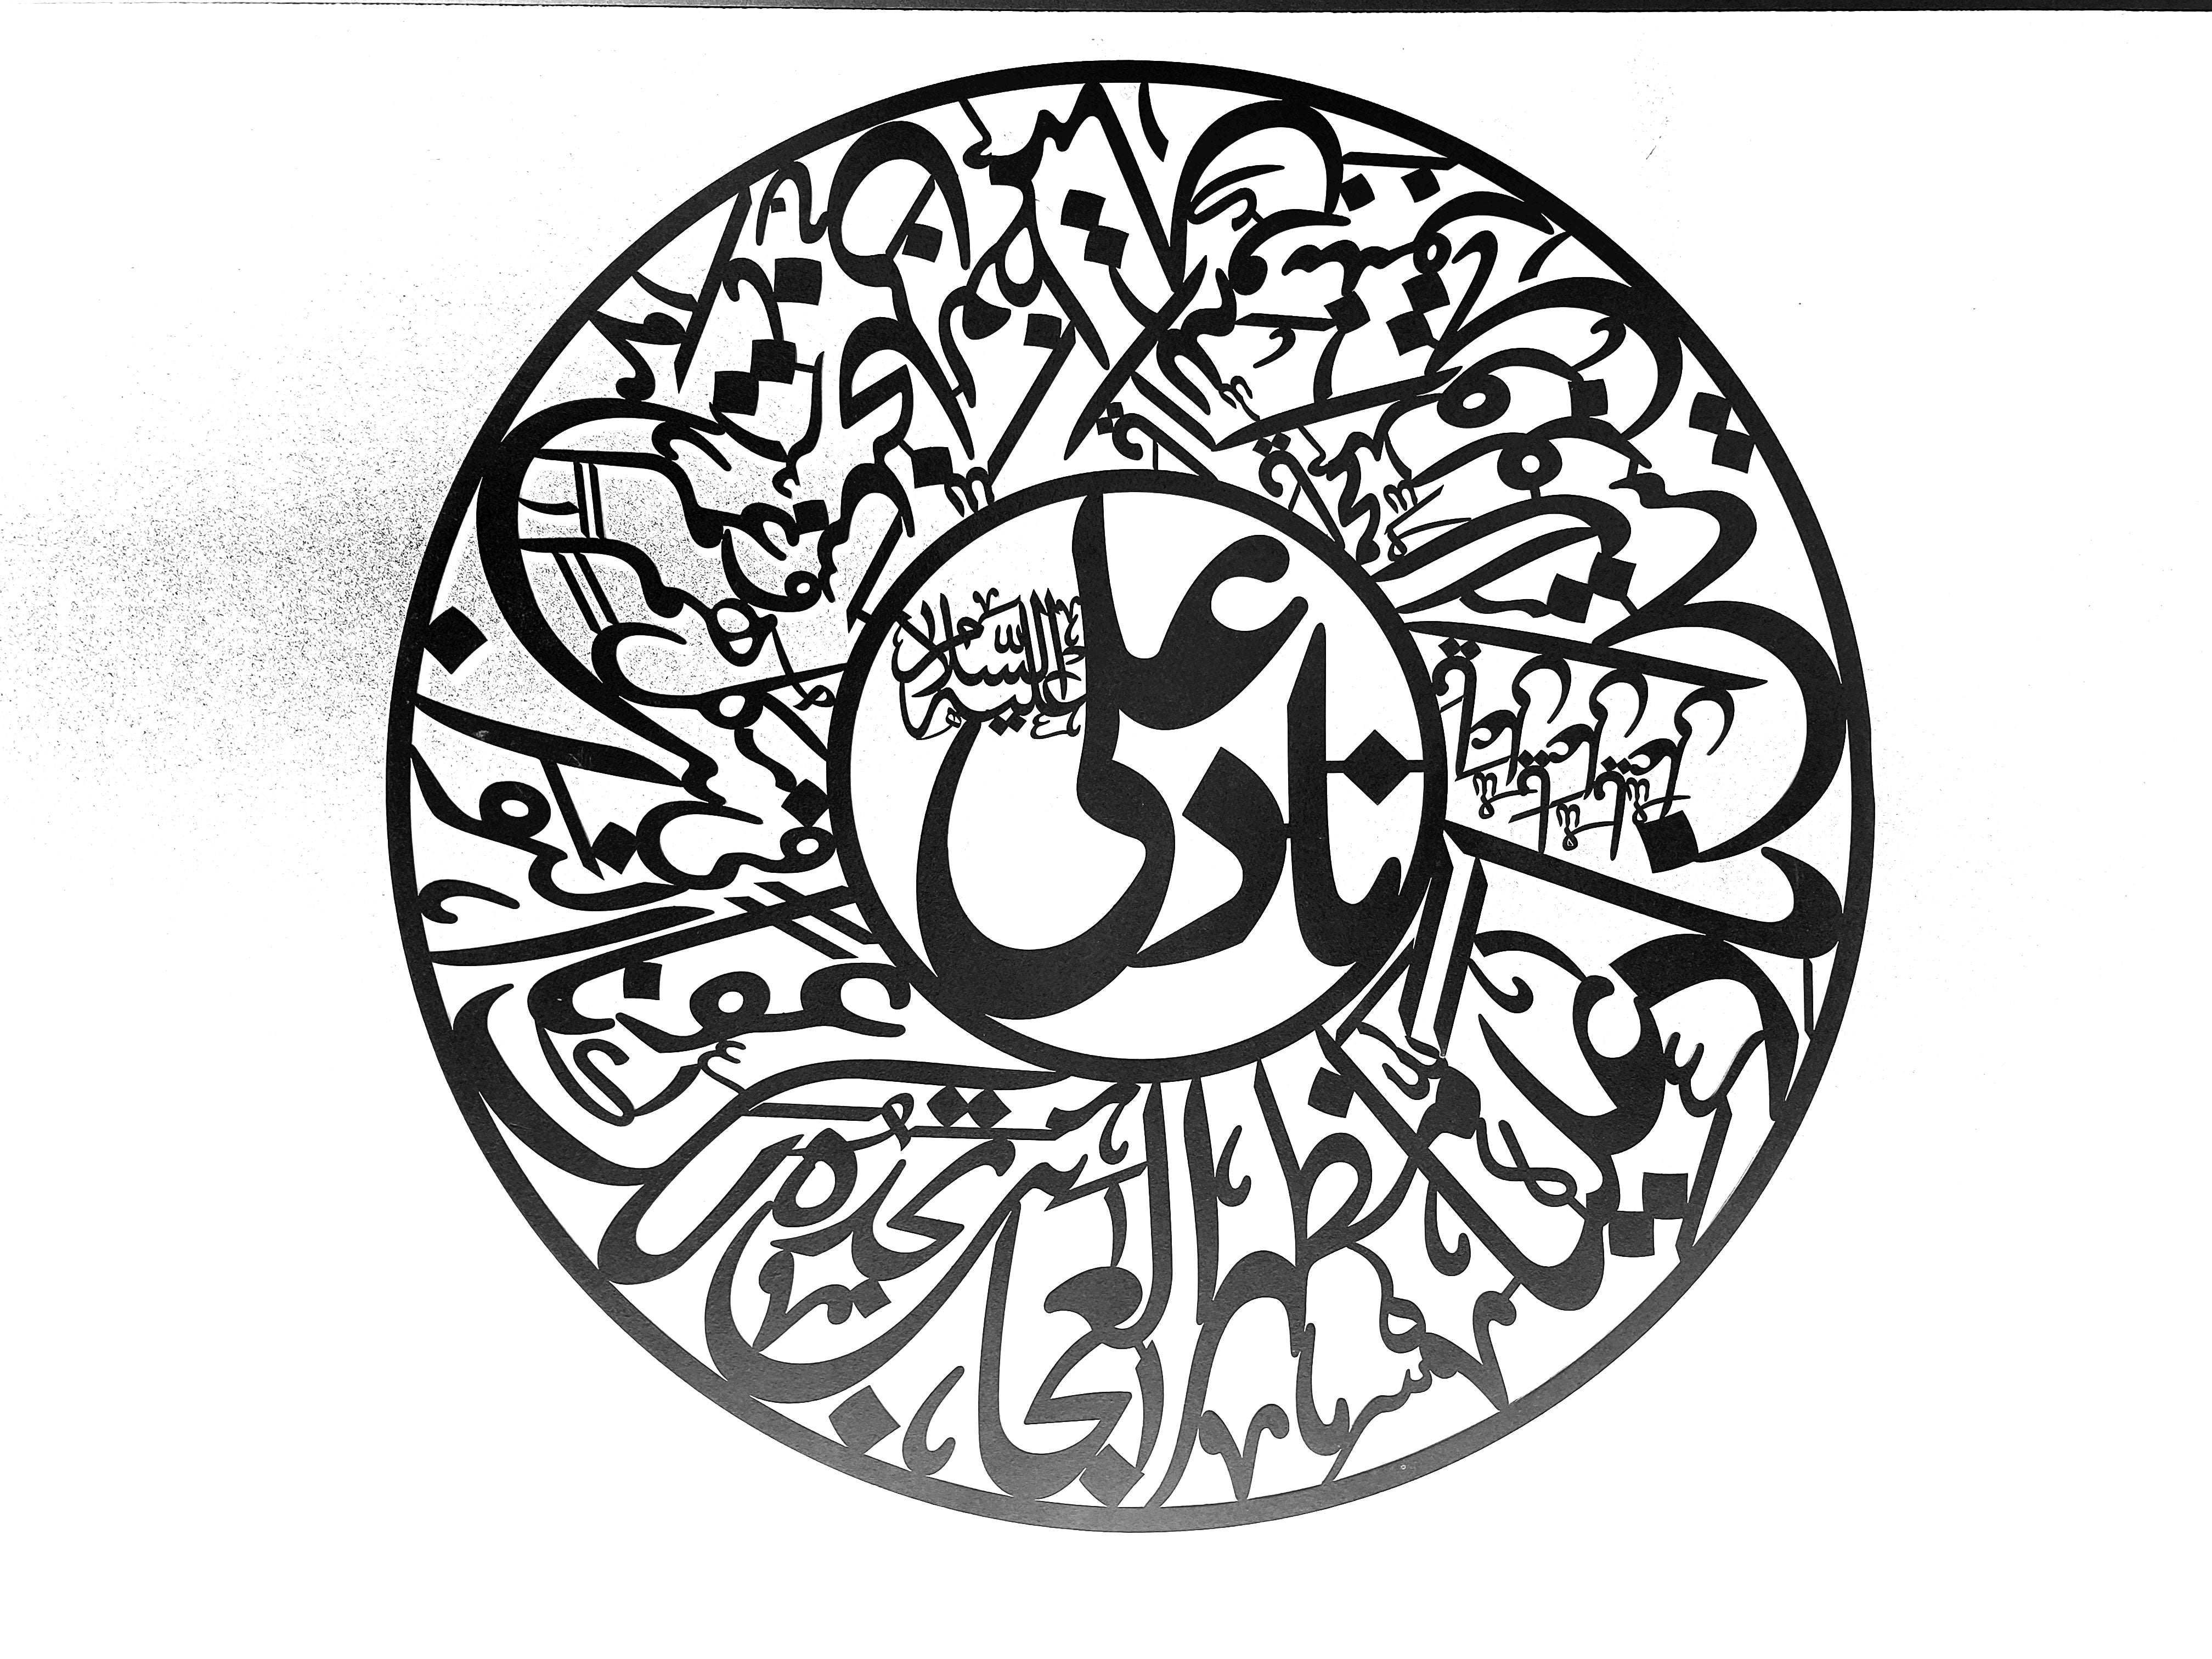 Nad E Ali Arabic Calligraphy Wall Art